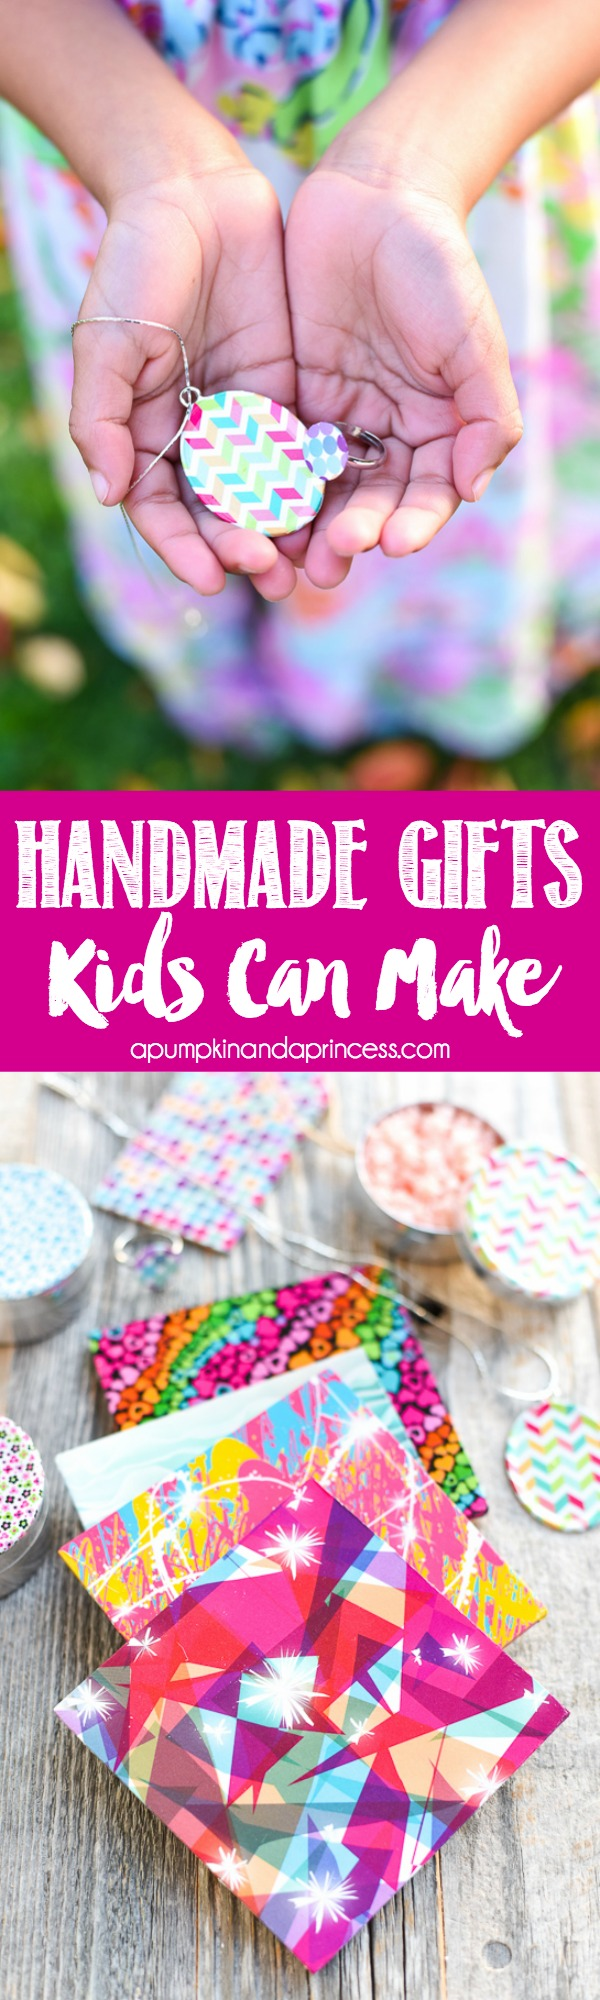 Handmade Gifts Kids Can Make - easy DIY gift ideas